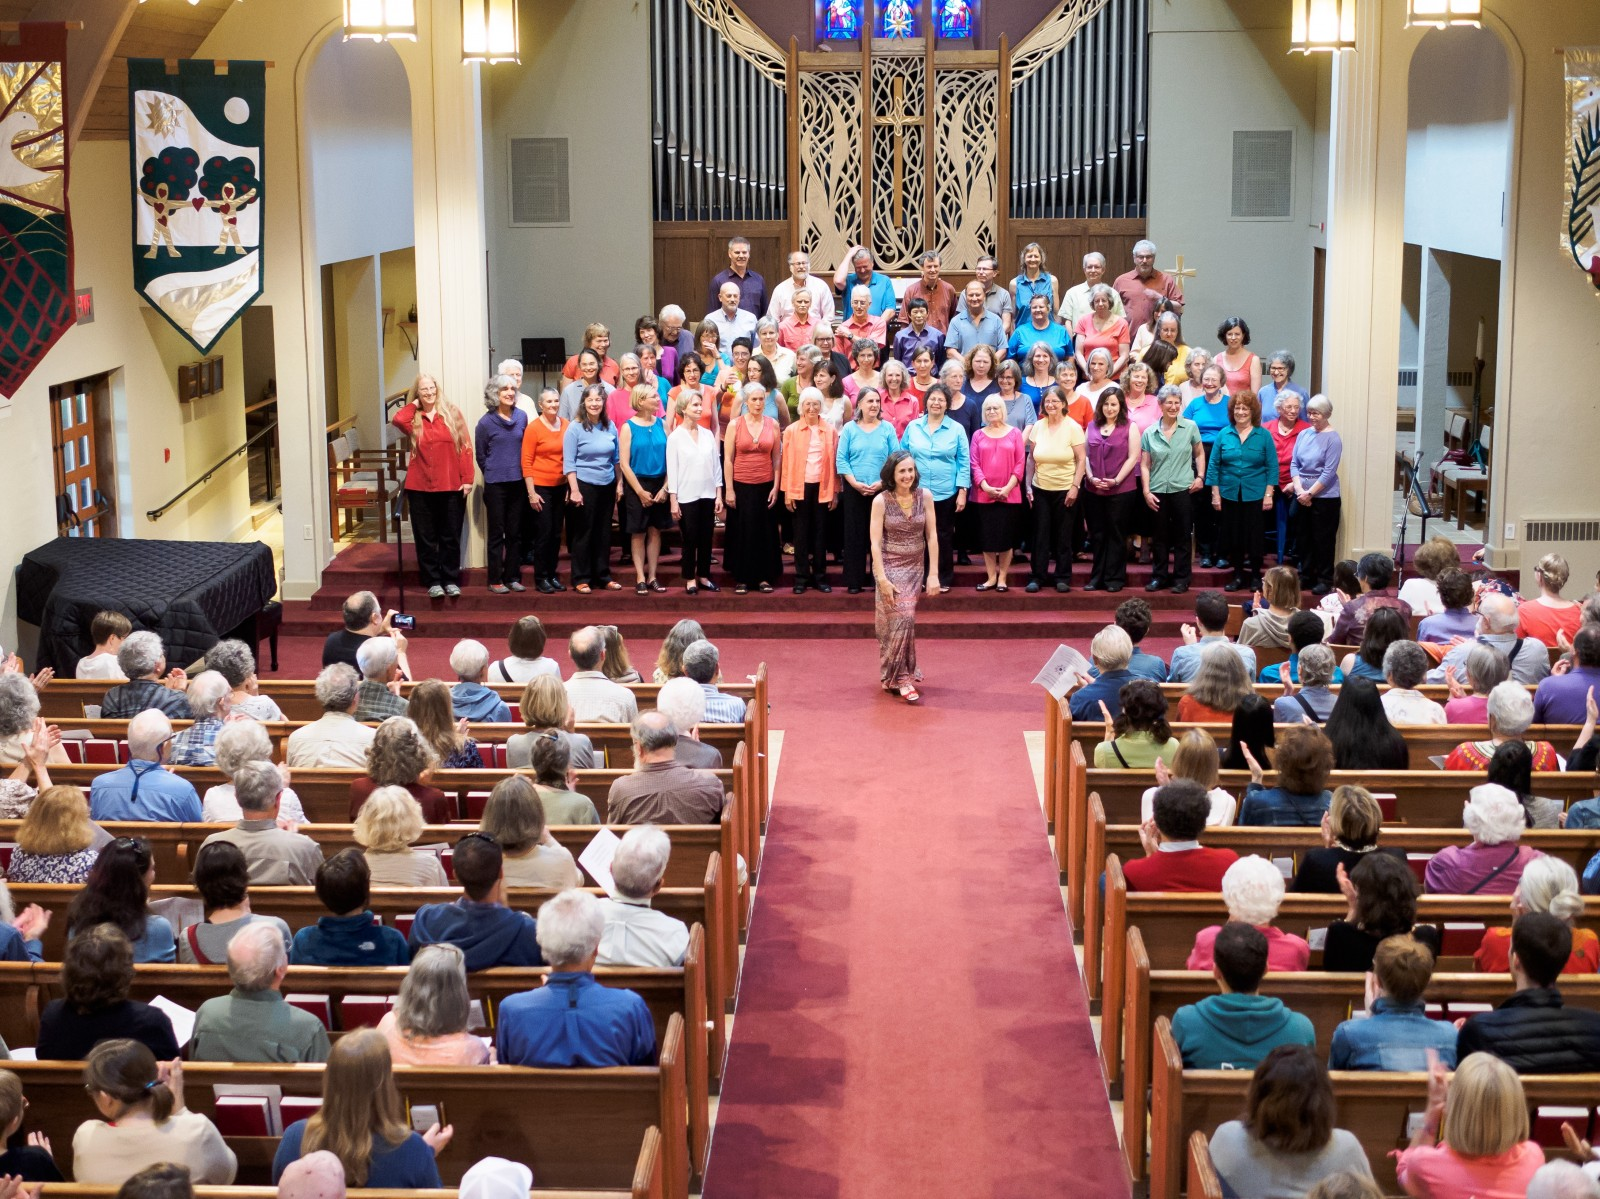 Phinney Neighborhood Community Chorus